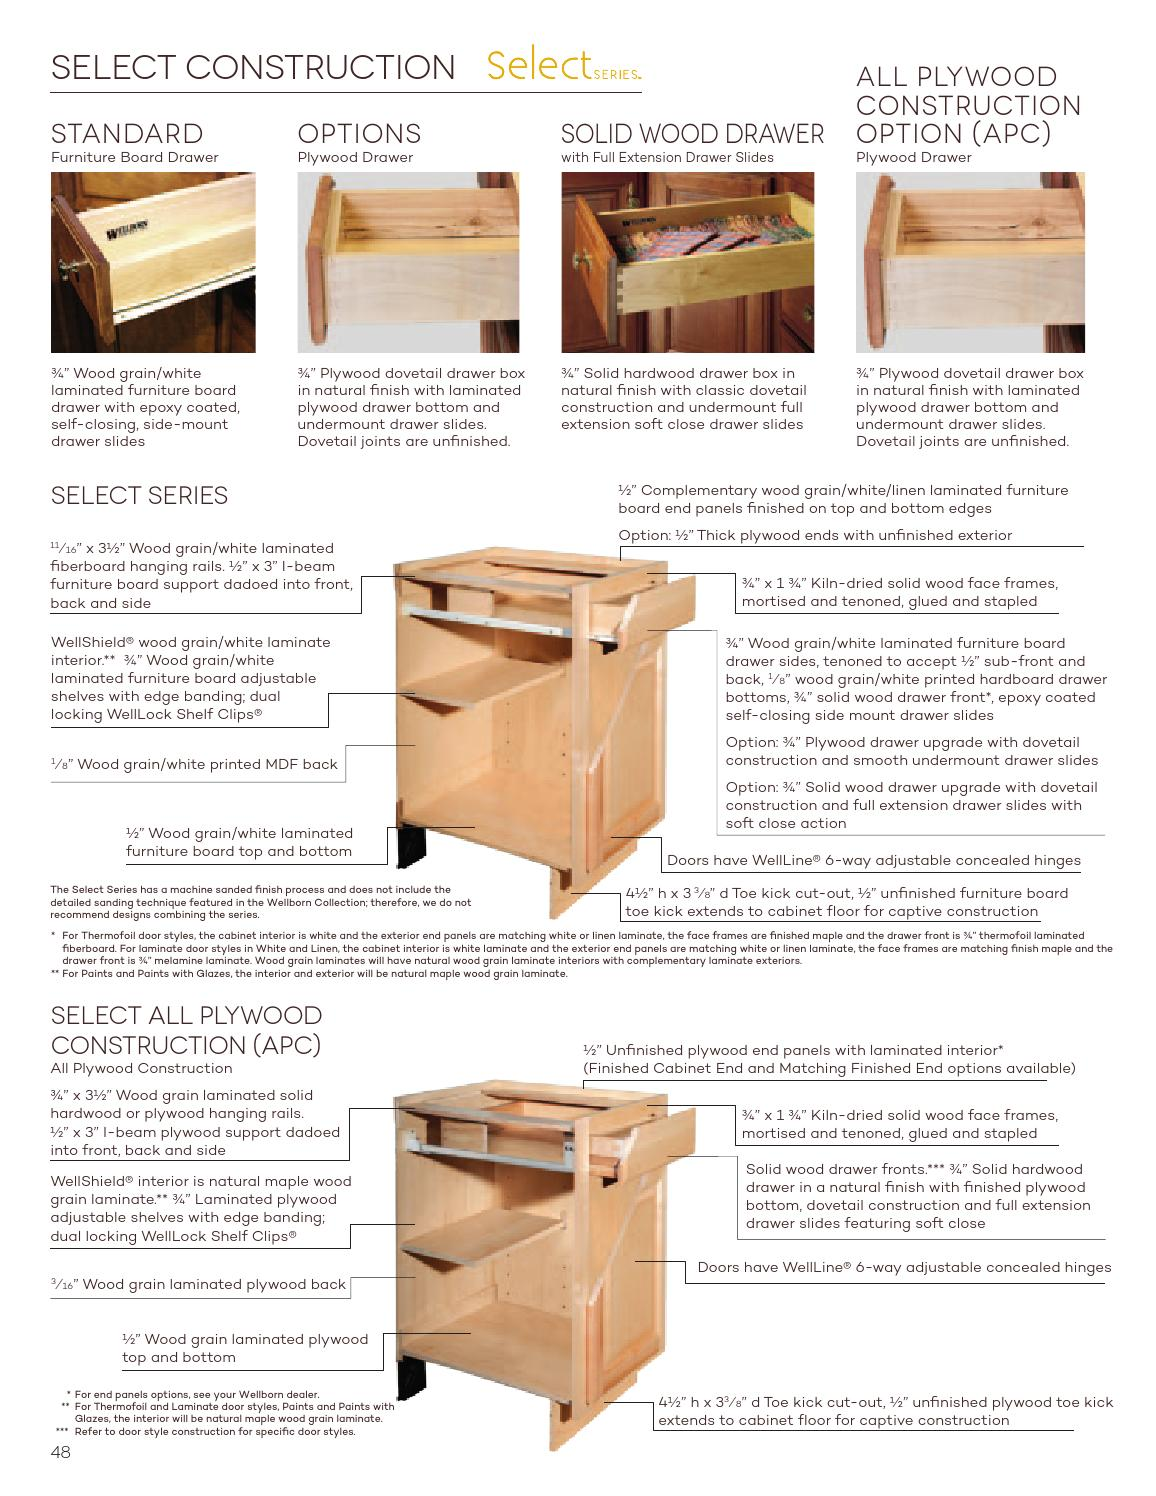 Start With A Beautiful Finish by Wellborn Cabinet Inc. - issuu